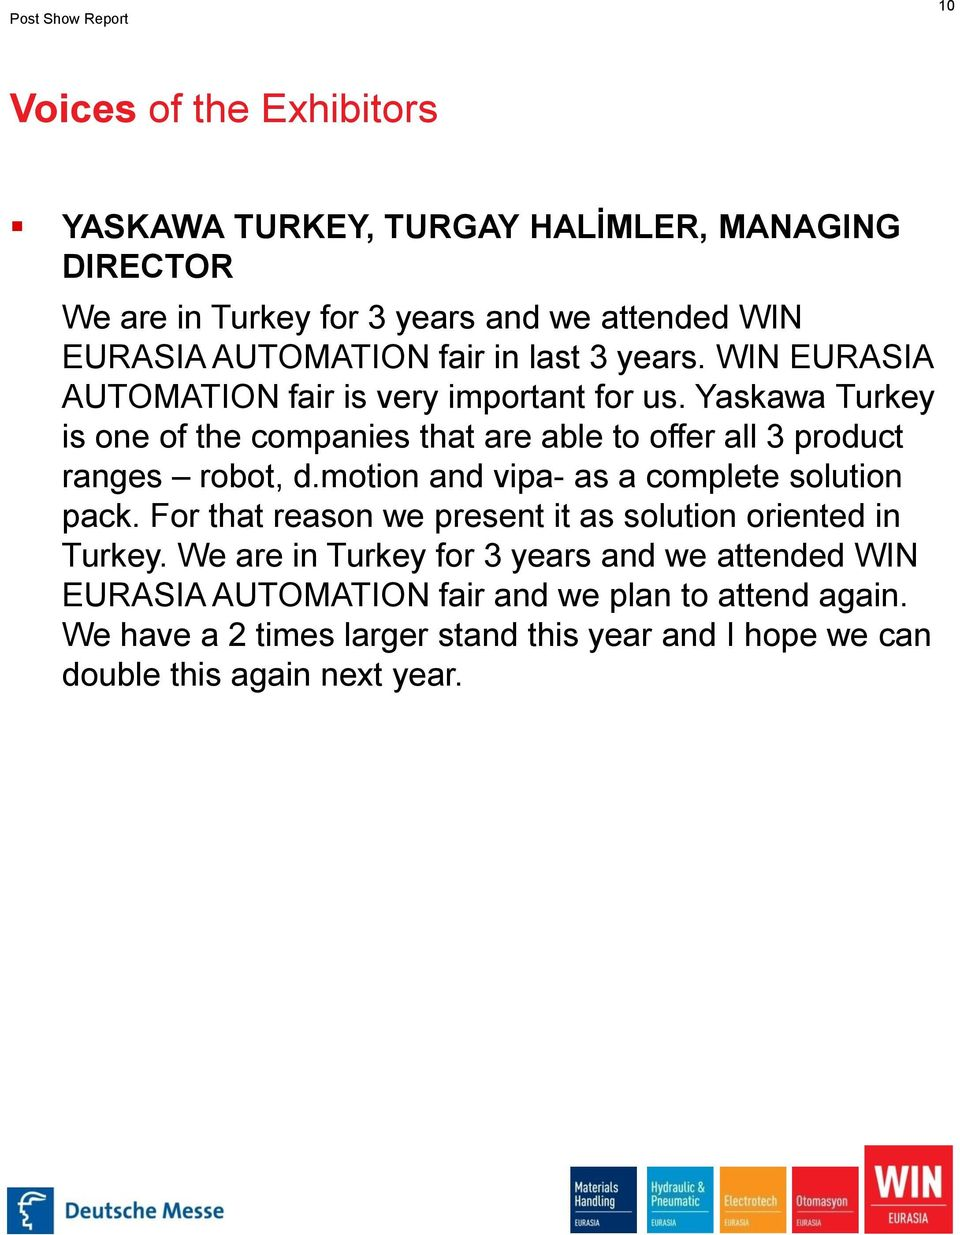 Yaskawa Turkey is one of the companies that are able to offer all 3 product ranges robot, d.motion and vipa- as a complete solution pack.